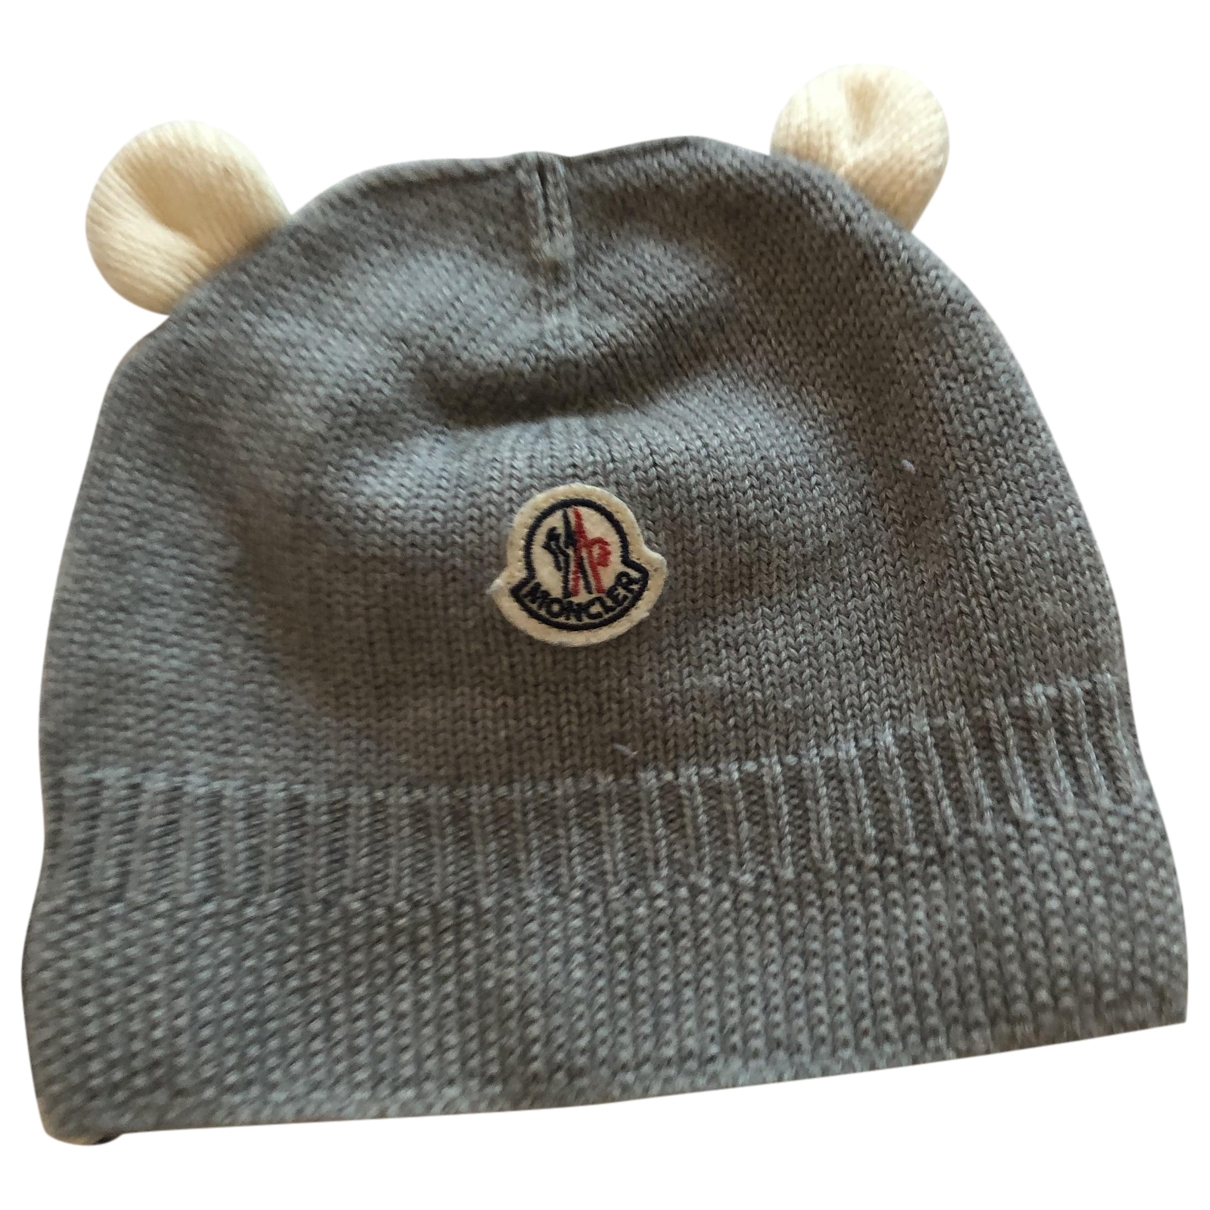 Moncler \N Grey Cotton hat & Gloves for Kids \N